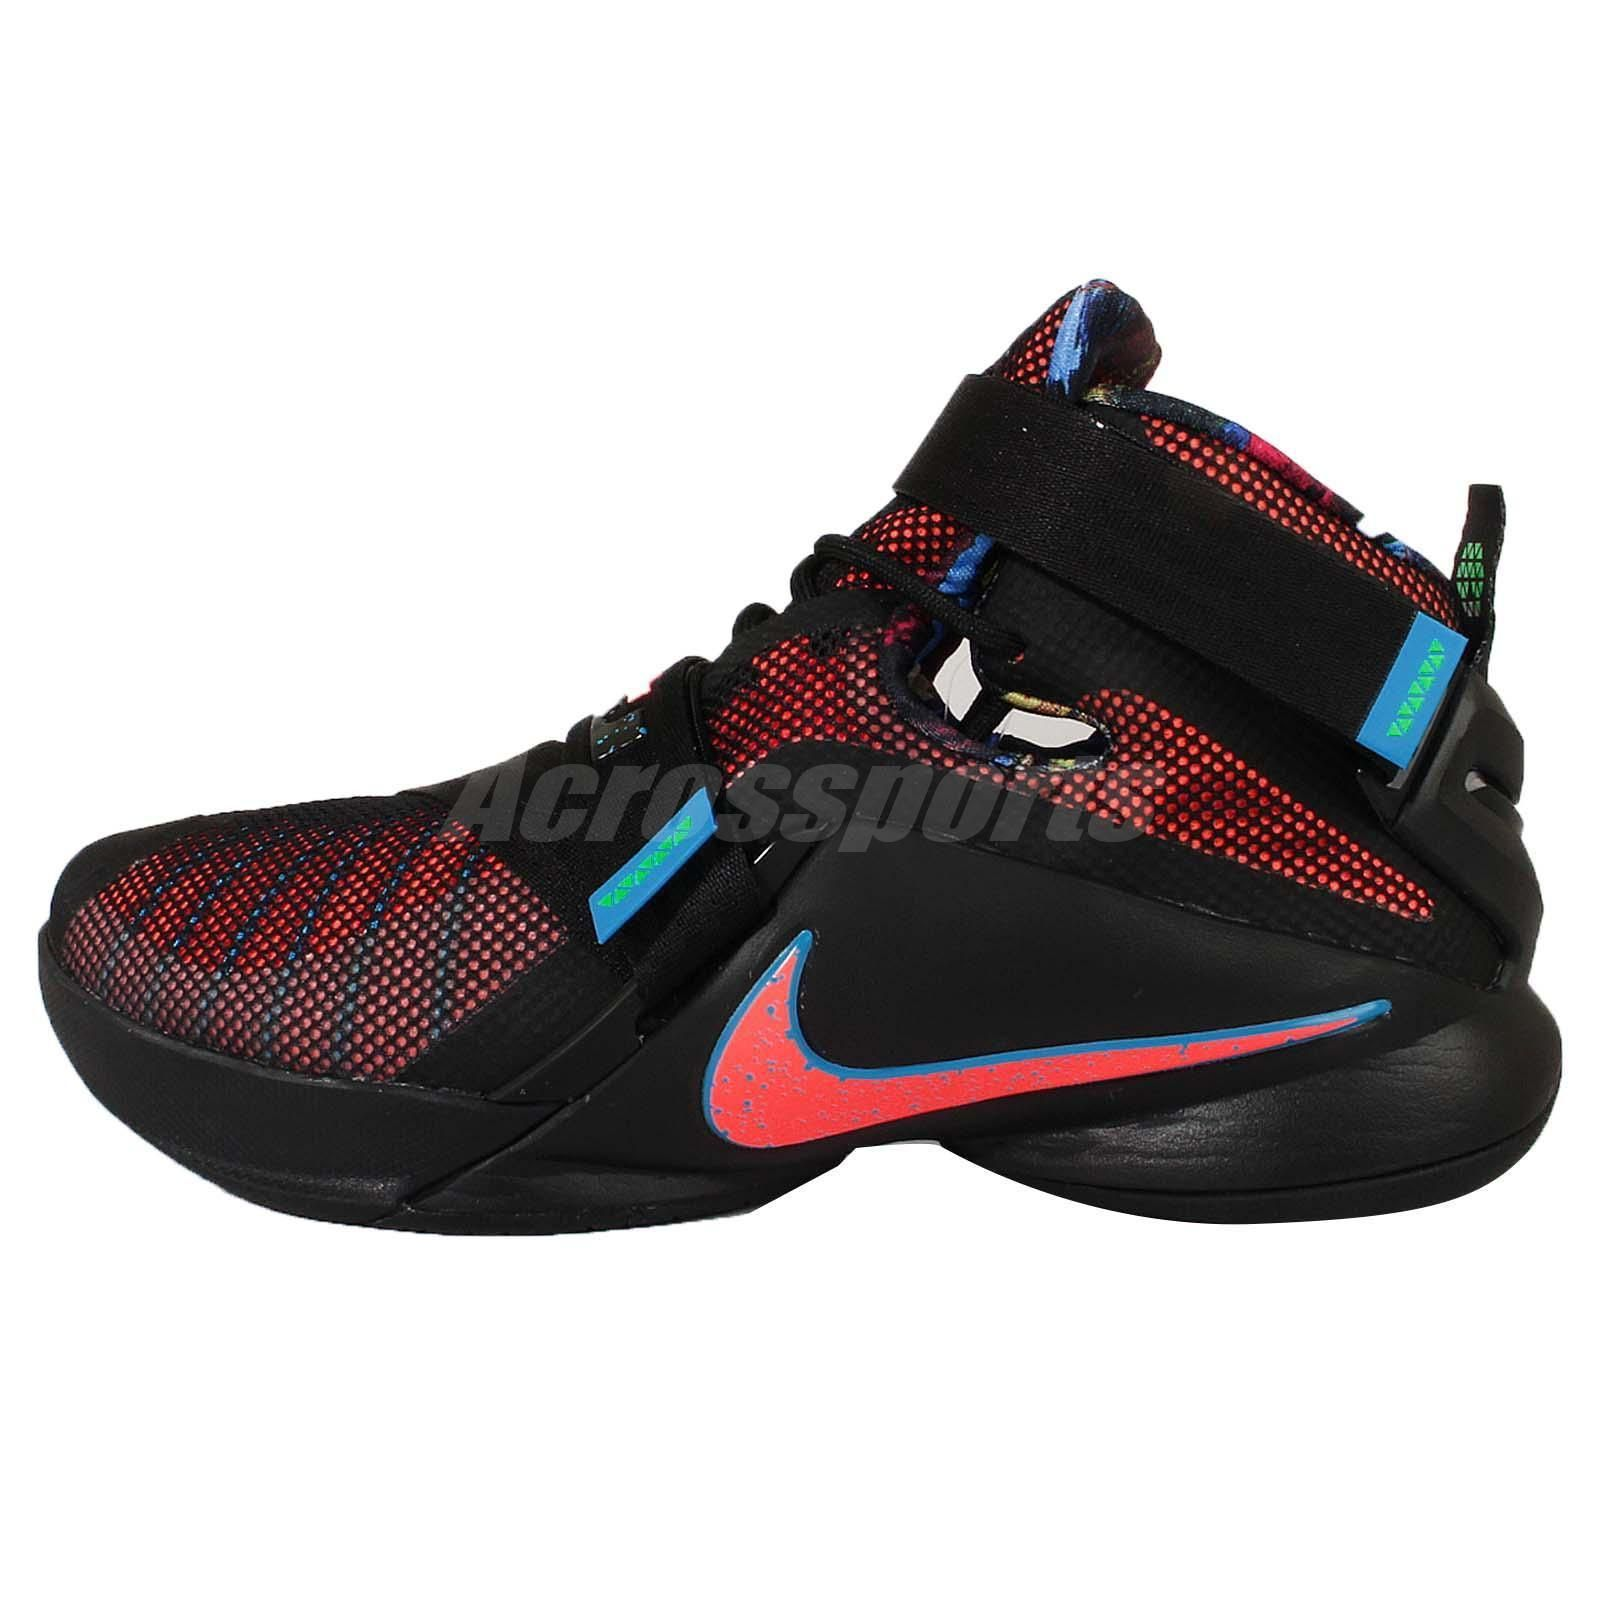 d11c5ded2a3b0 Nike Lebron Soldier IX 9 PRM EP King Lebron James Mens Basketball Shoes  Pick 1…